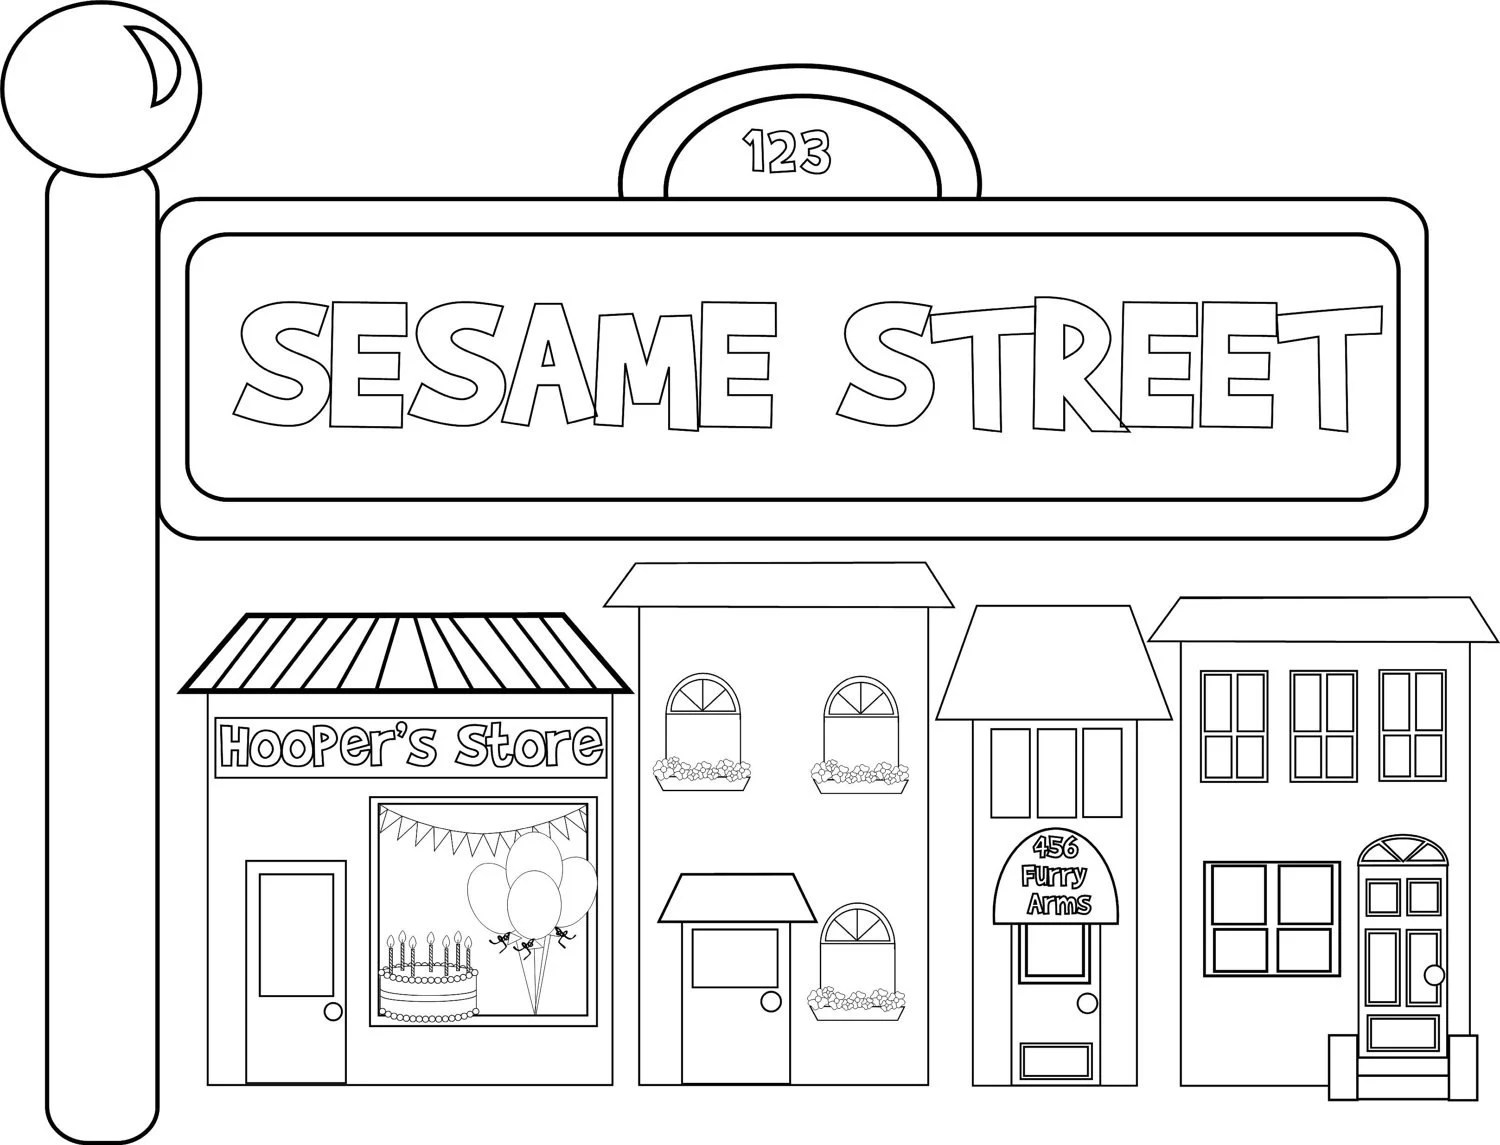 Sesame Street Inspired Custom Coloring Sheet